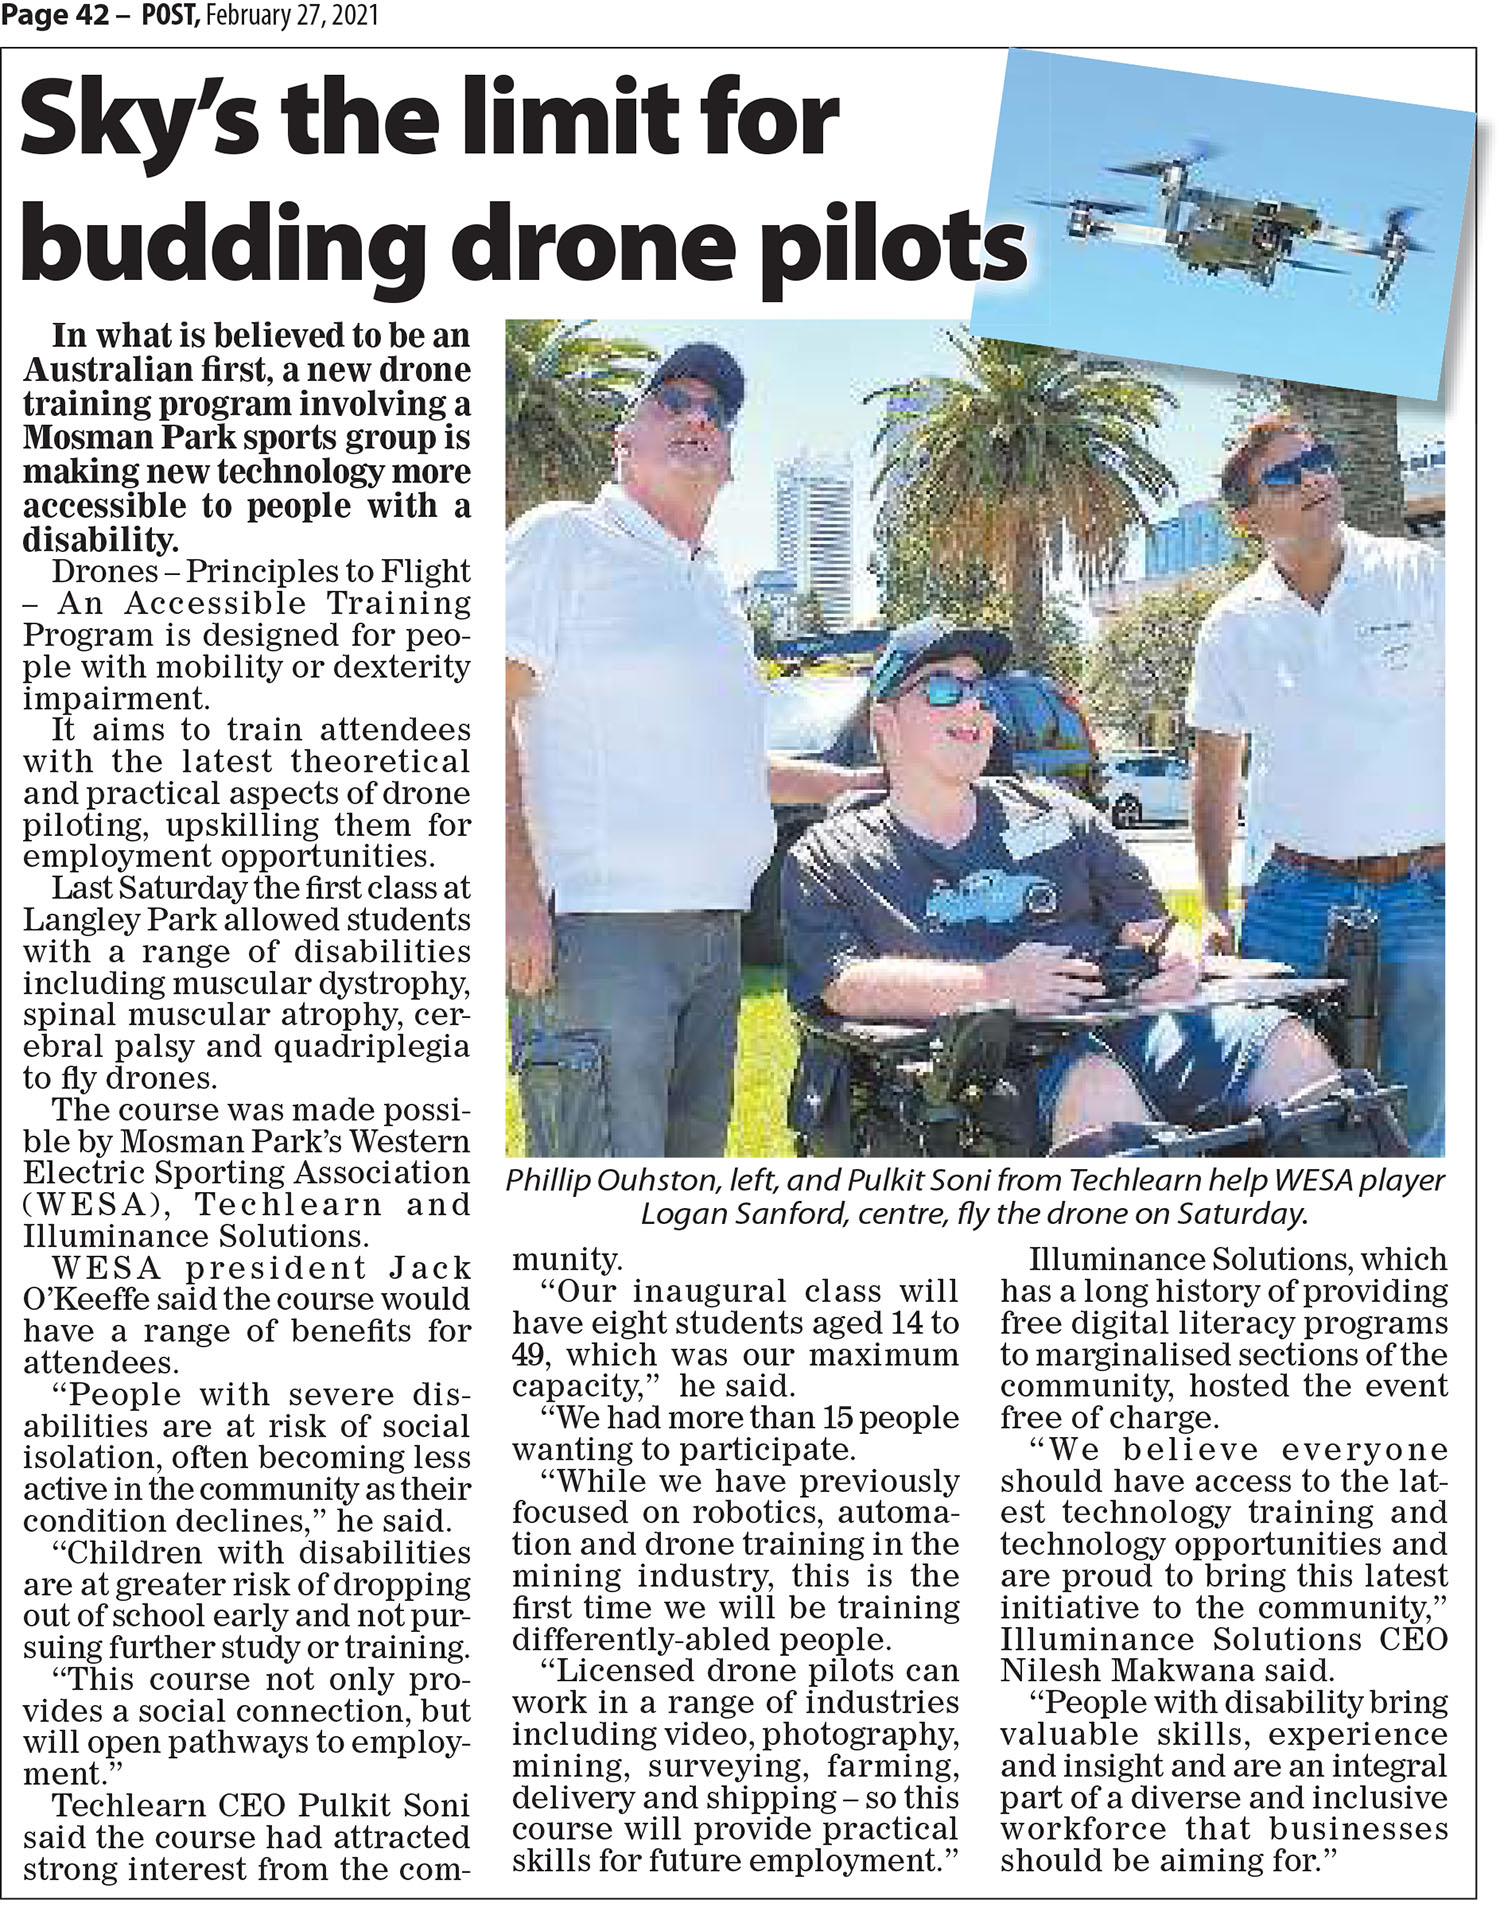 Sky's the limit for budding drone pilots - Post Newspaper 26022021 illuminance Solutions web page